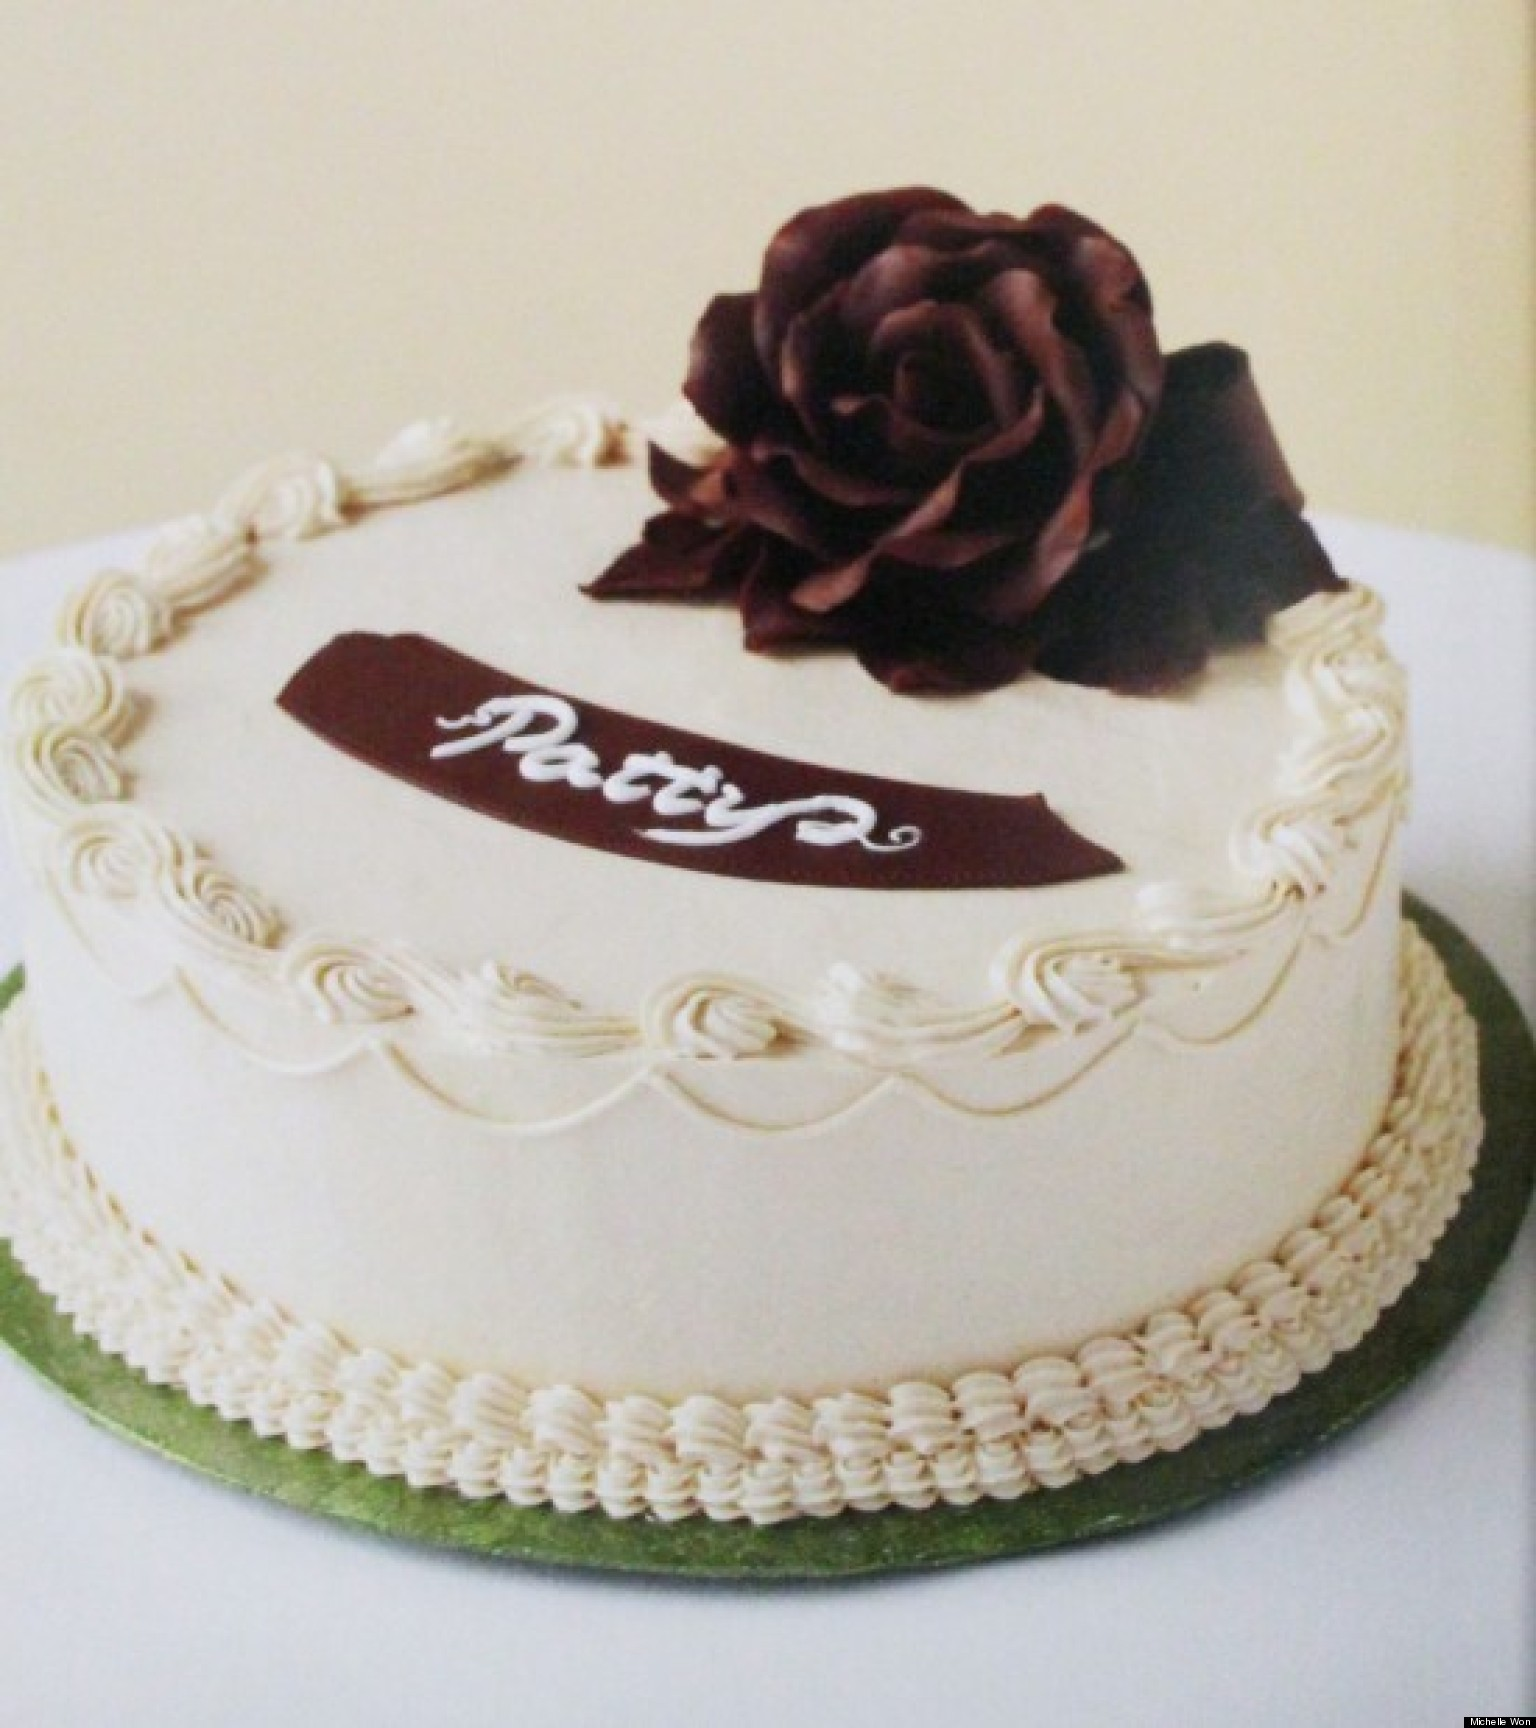 A Lesson In Cake Decorating And Recipe For Almond Paste